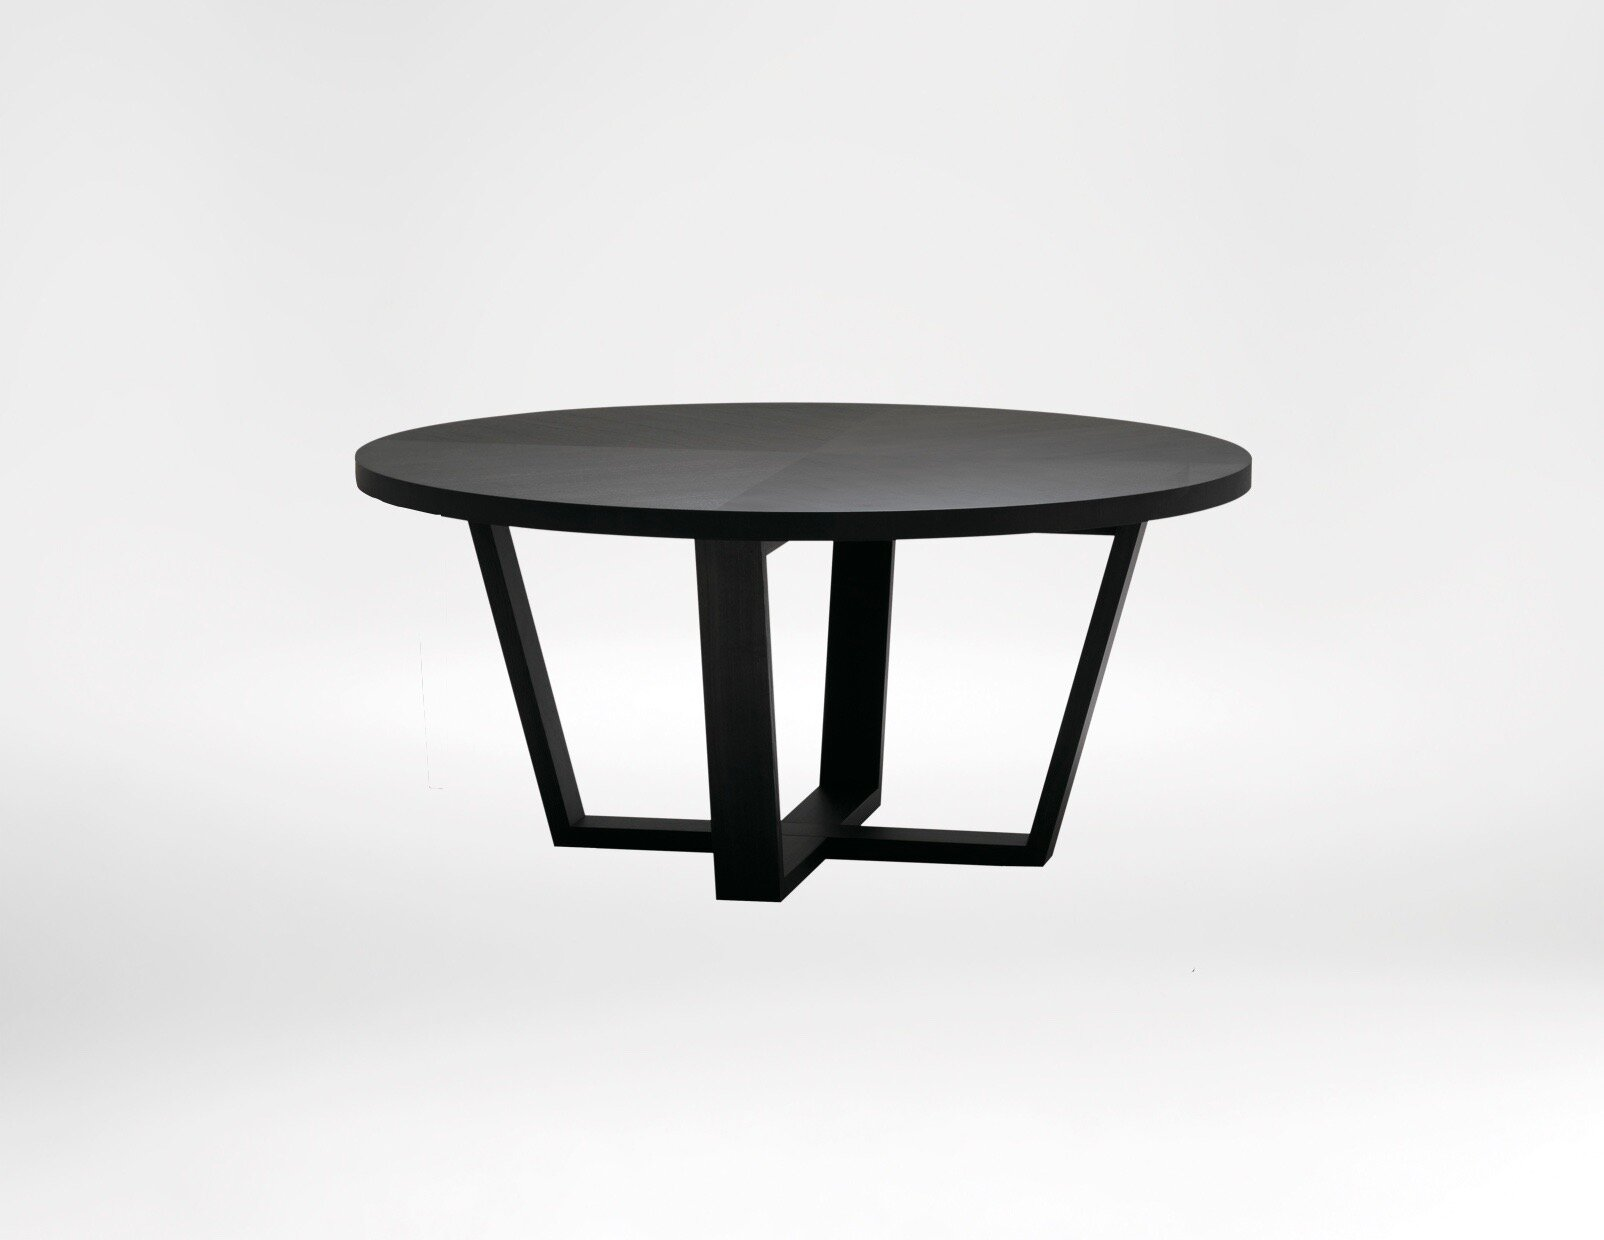 Domo dining table - Contemporary styling with the quality of traditional craftsmanship.